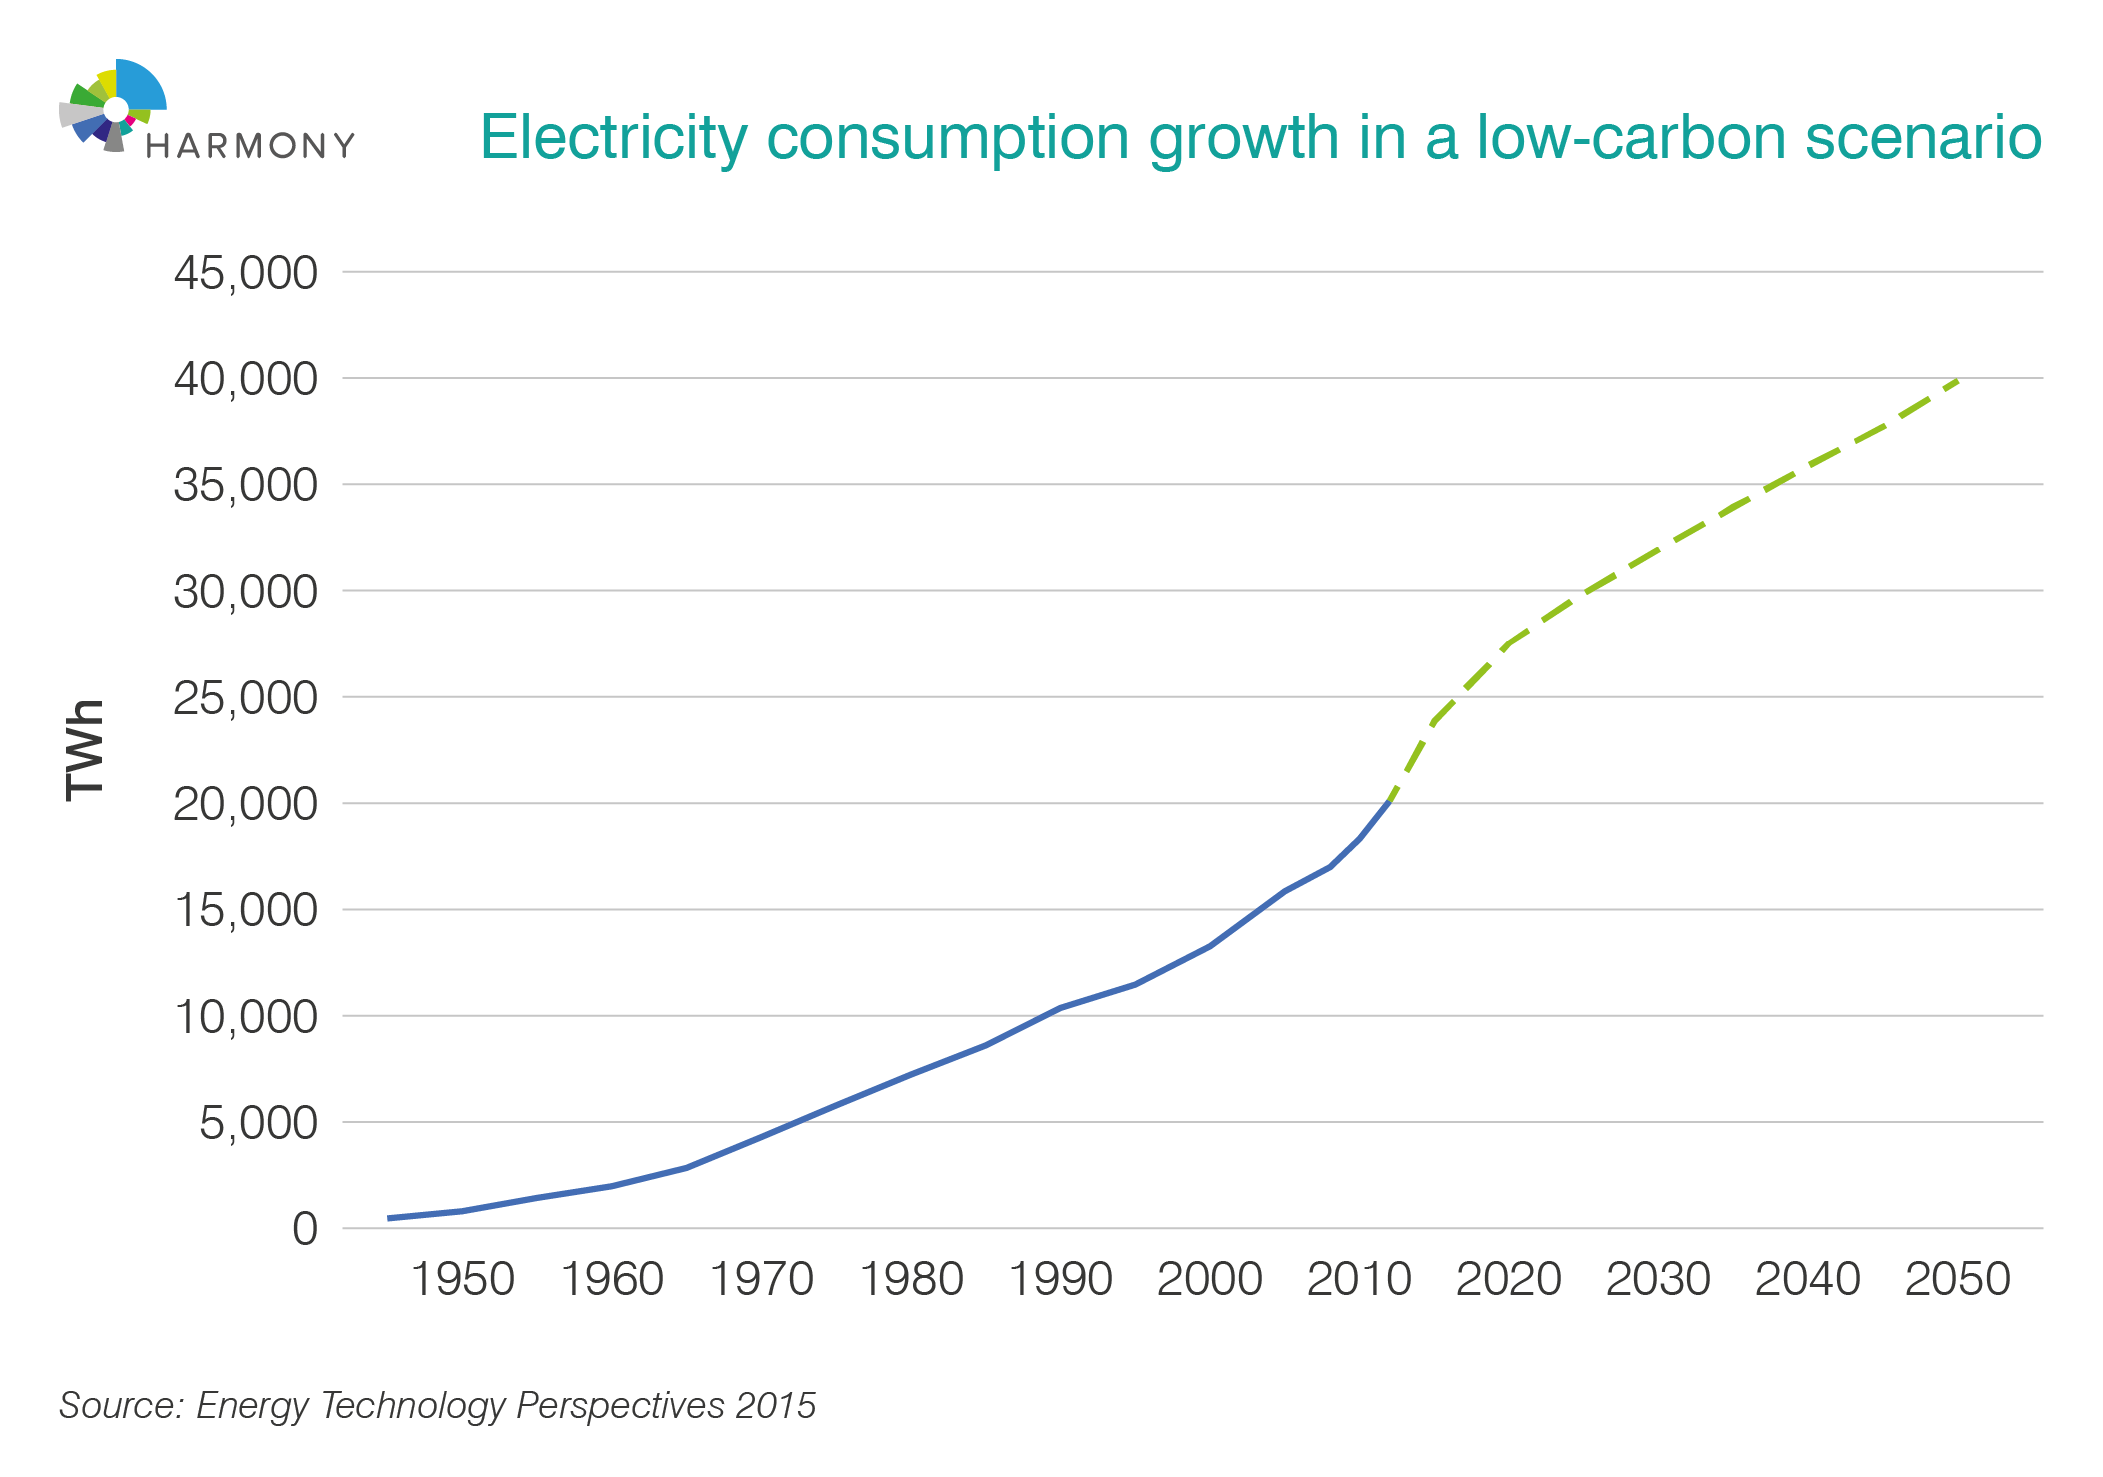 Electricity consumption growth in a low carbon scenario